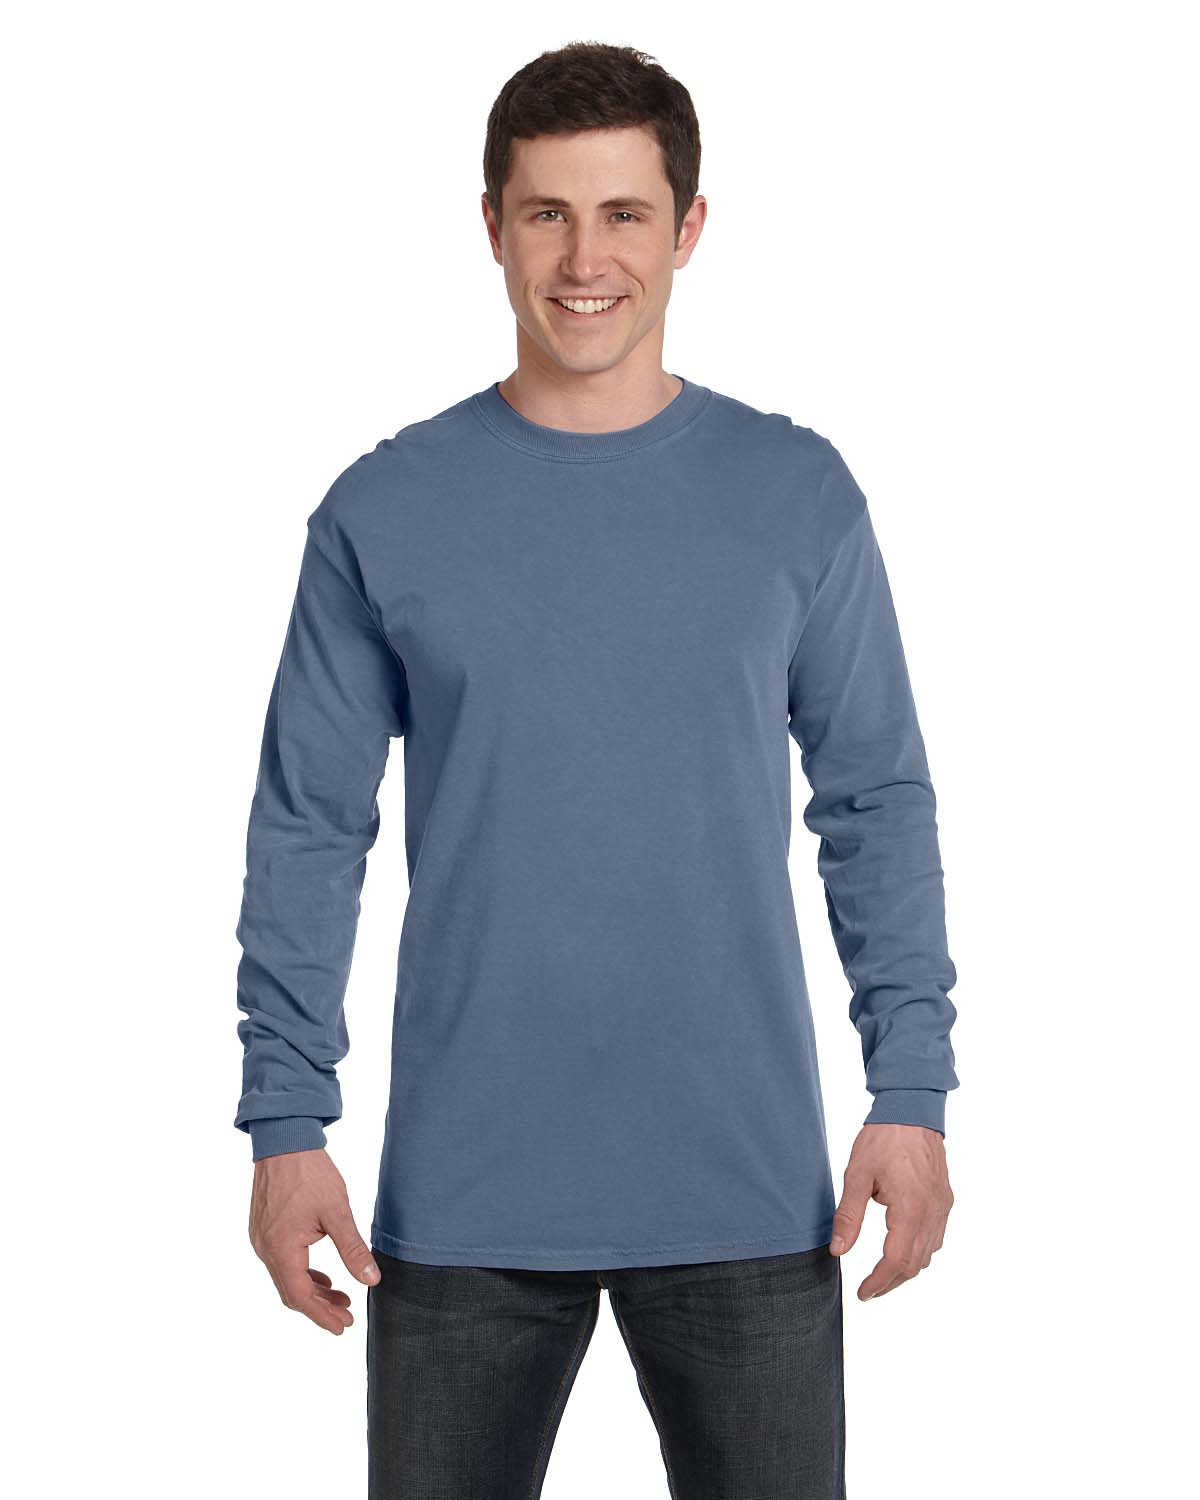 48c232a81 6 Reviews.. Comfort Colors C6014 Adult Heavyweight RS Long-Sleeve T-Shirt